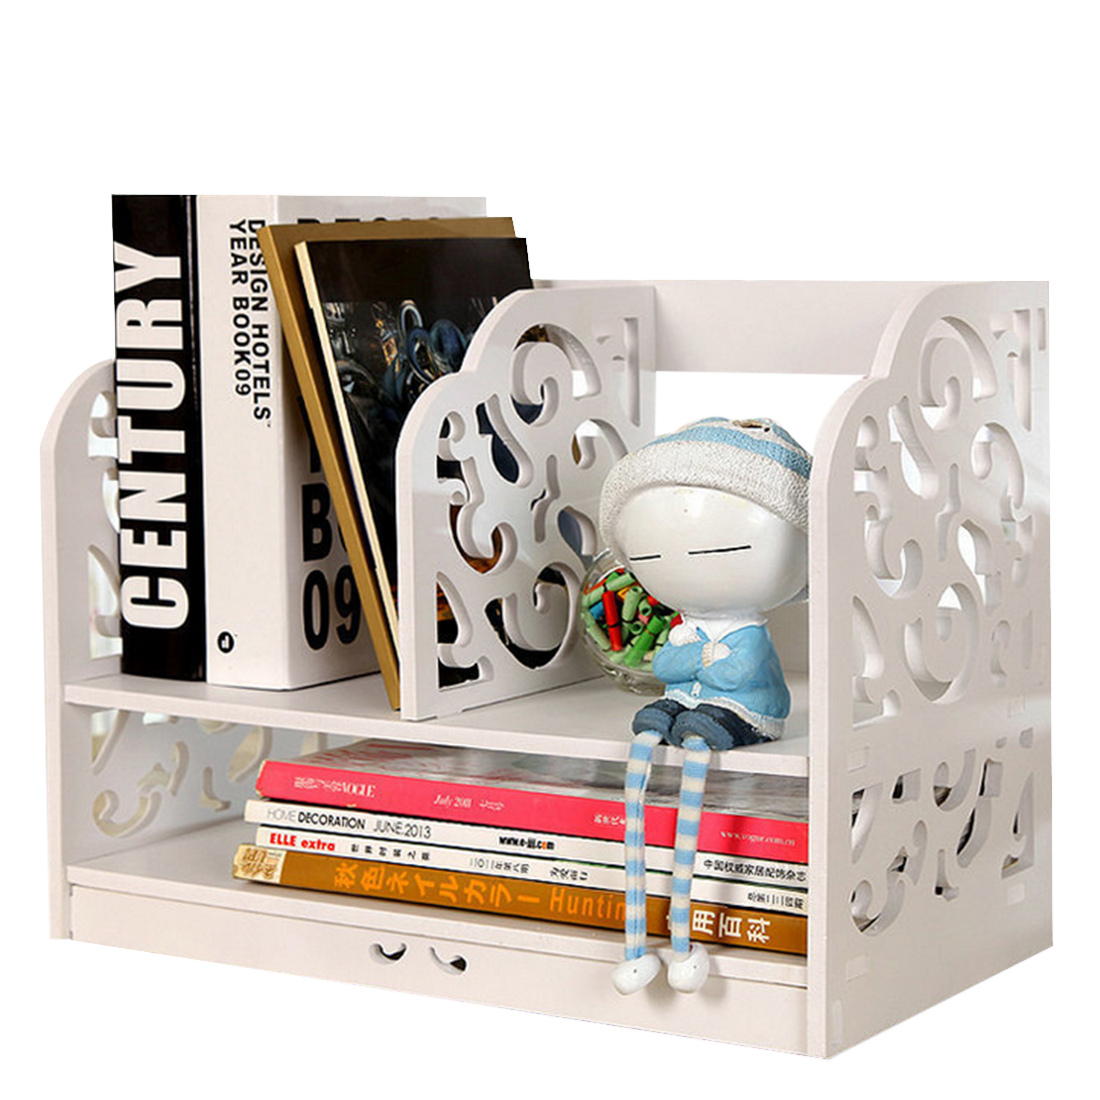 Creative Simple Tabletop Bookshelf Durable Combined Books Organizer Storage Shelf White